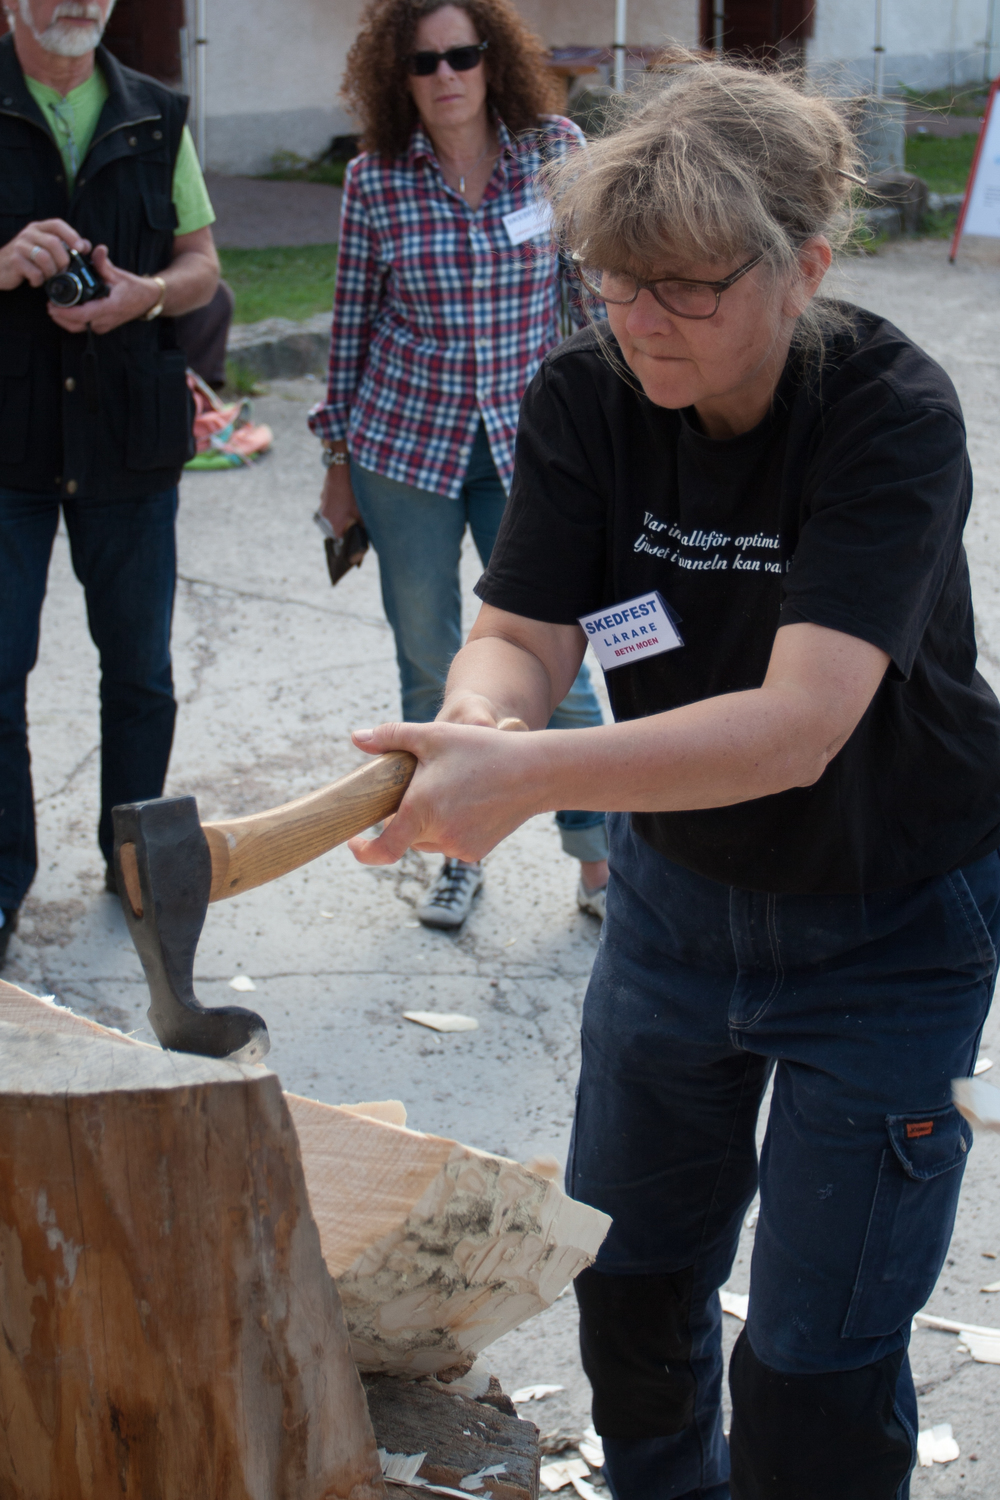 Beth Moen hewing out a bowl with a long handled adze at Skedfest 2014